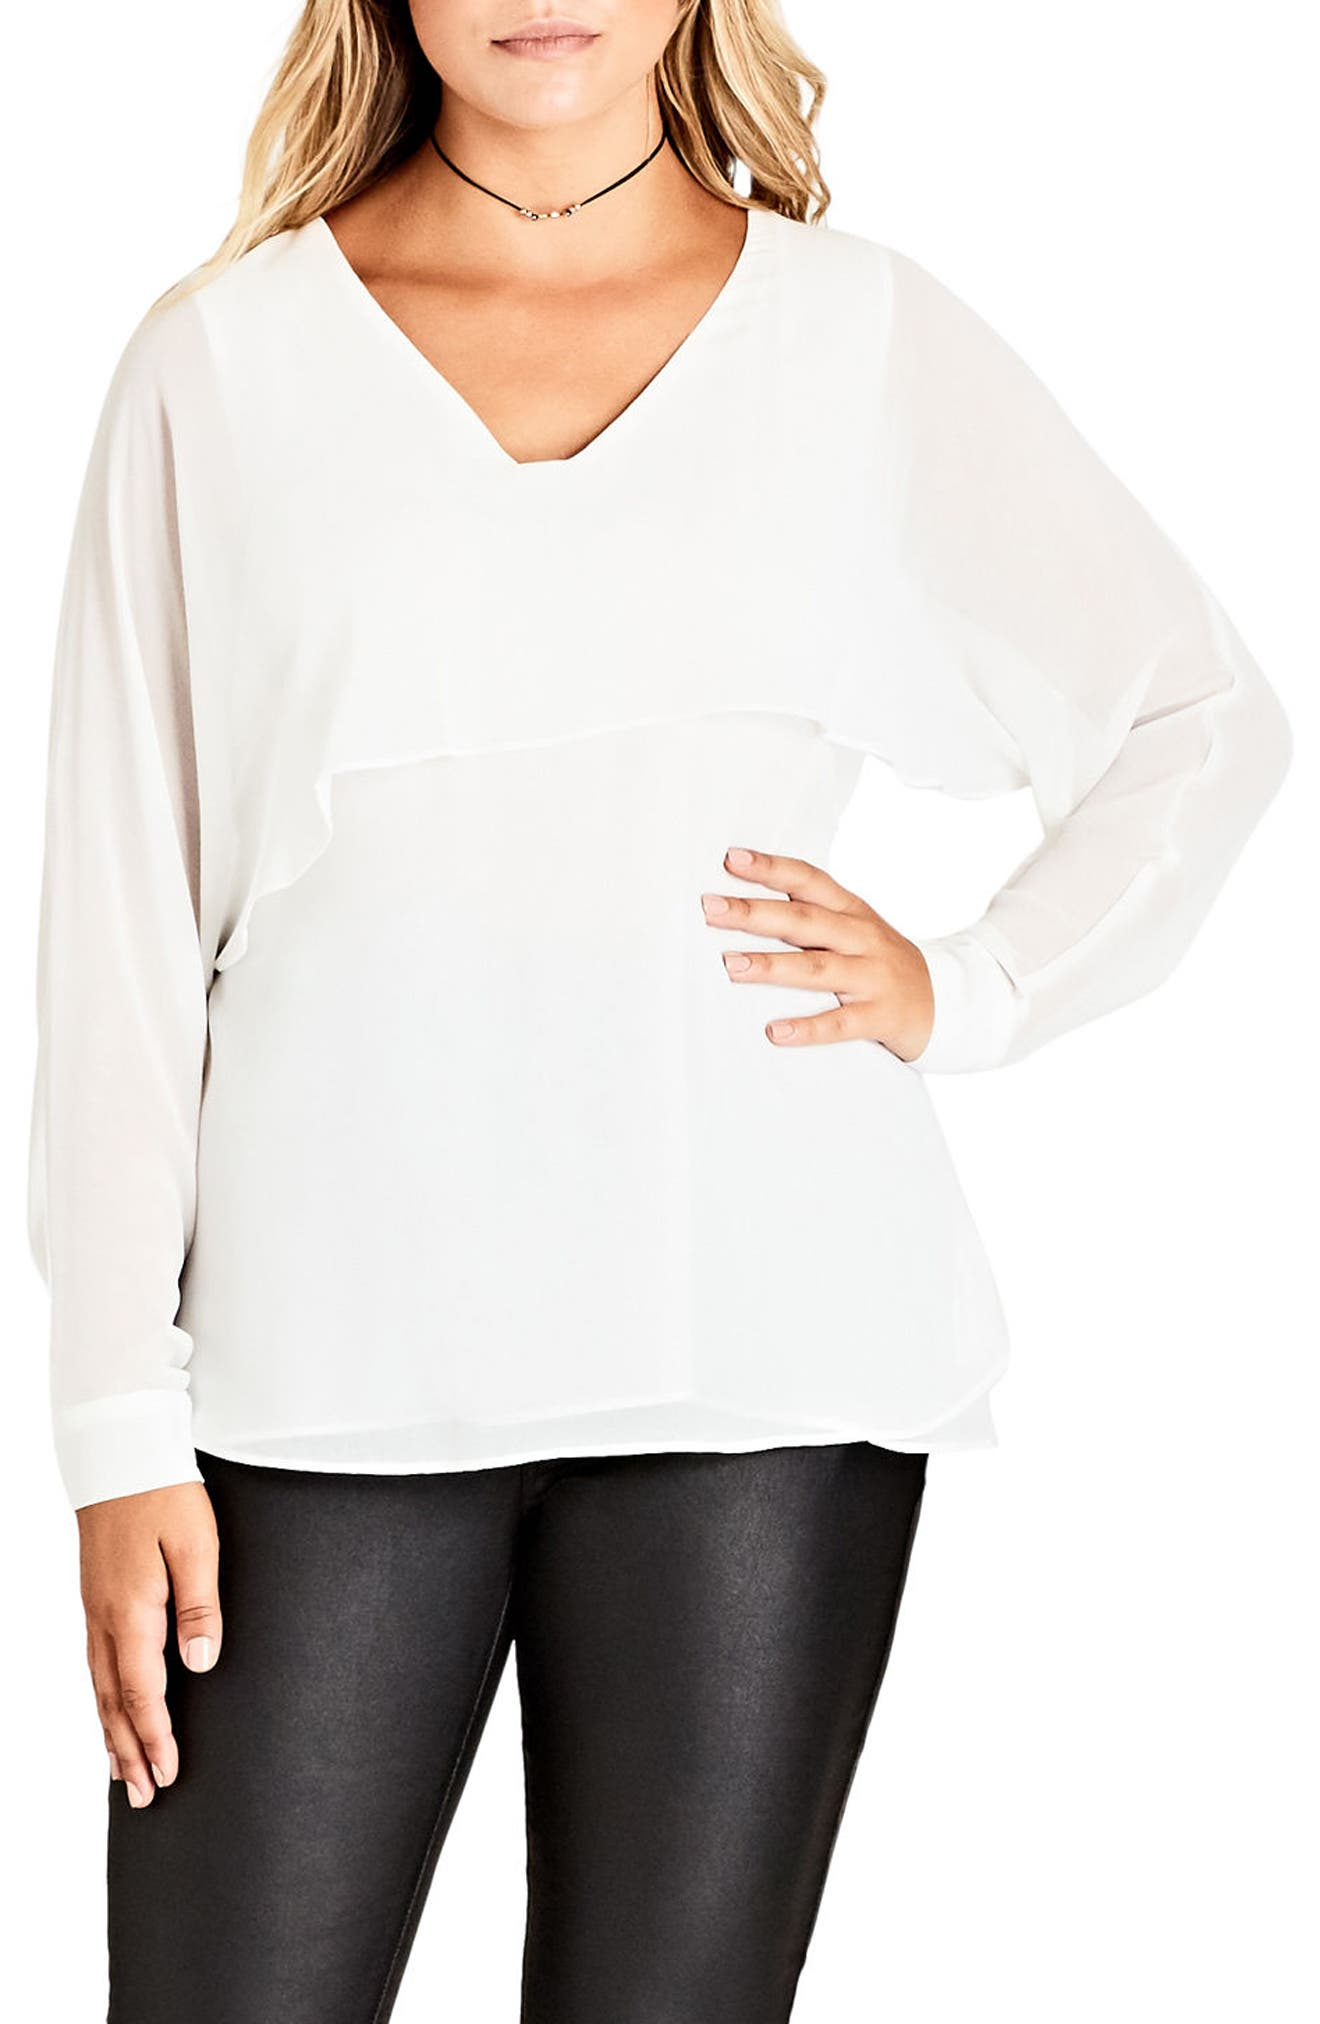 Main Image - City Chic Cape Top (Plus Size)